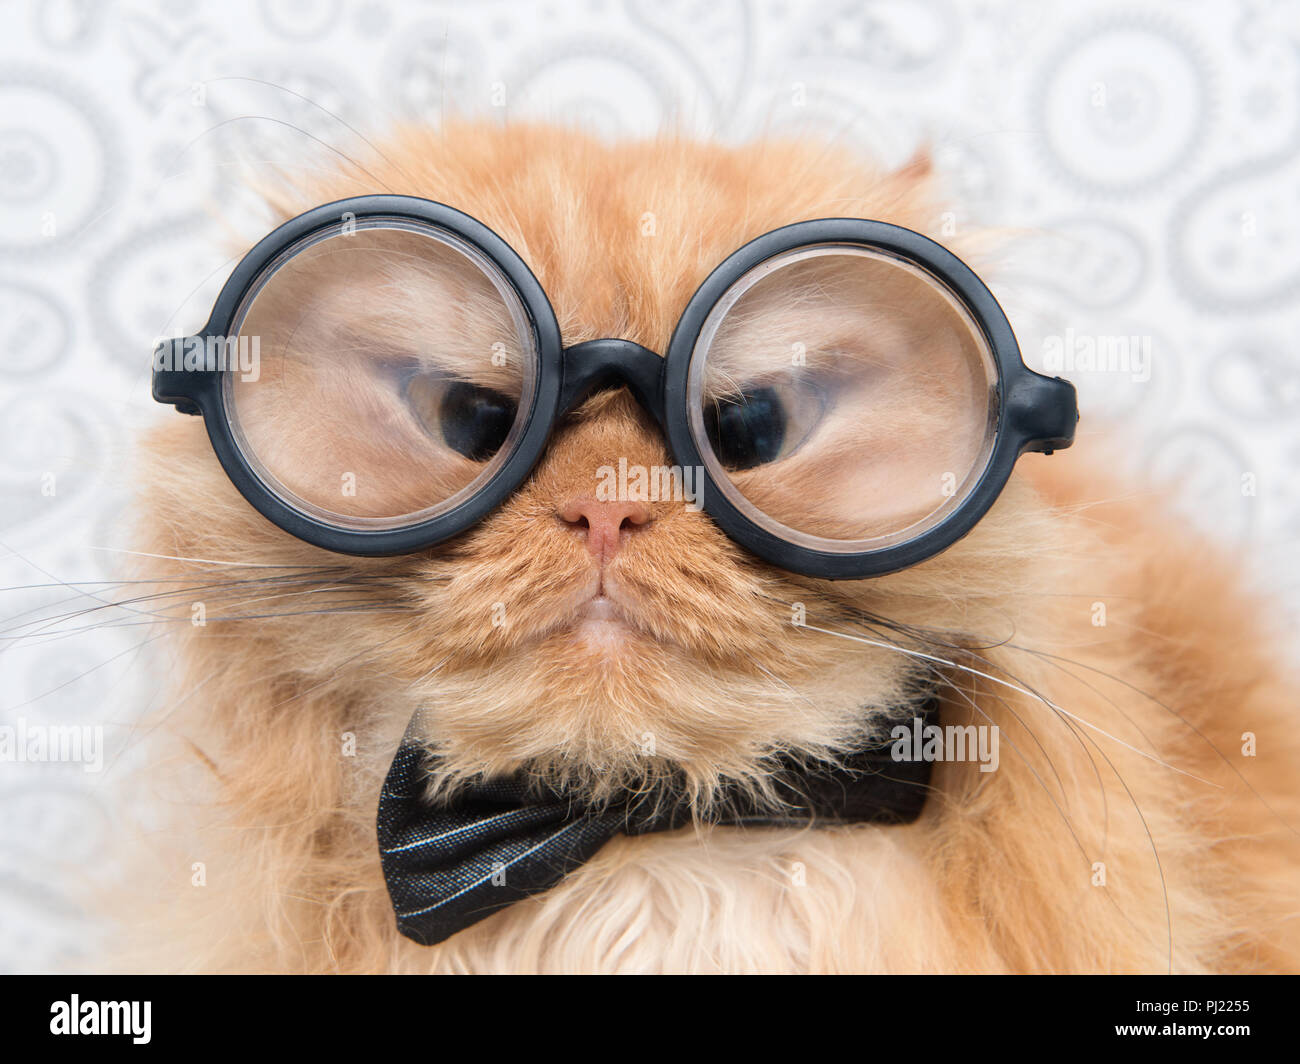 Funny Persian cat with big round eye glasses. - Stock Image